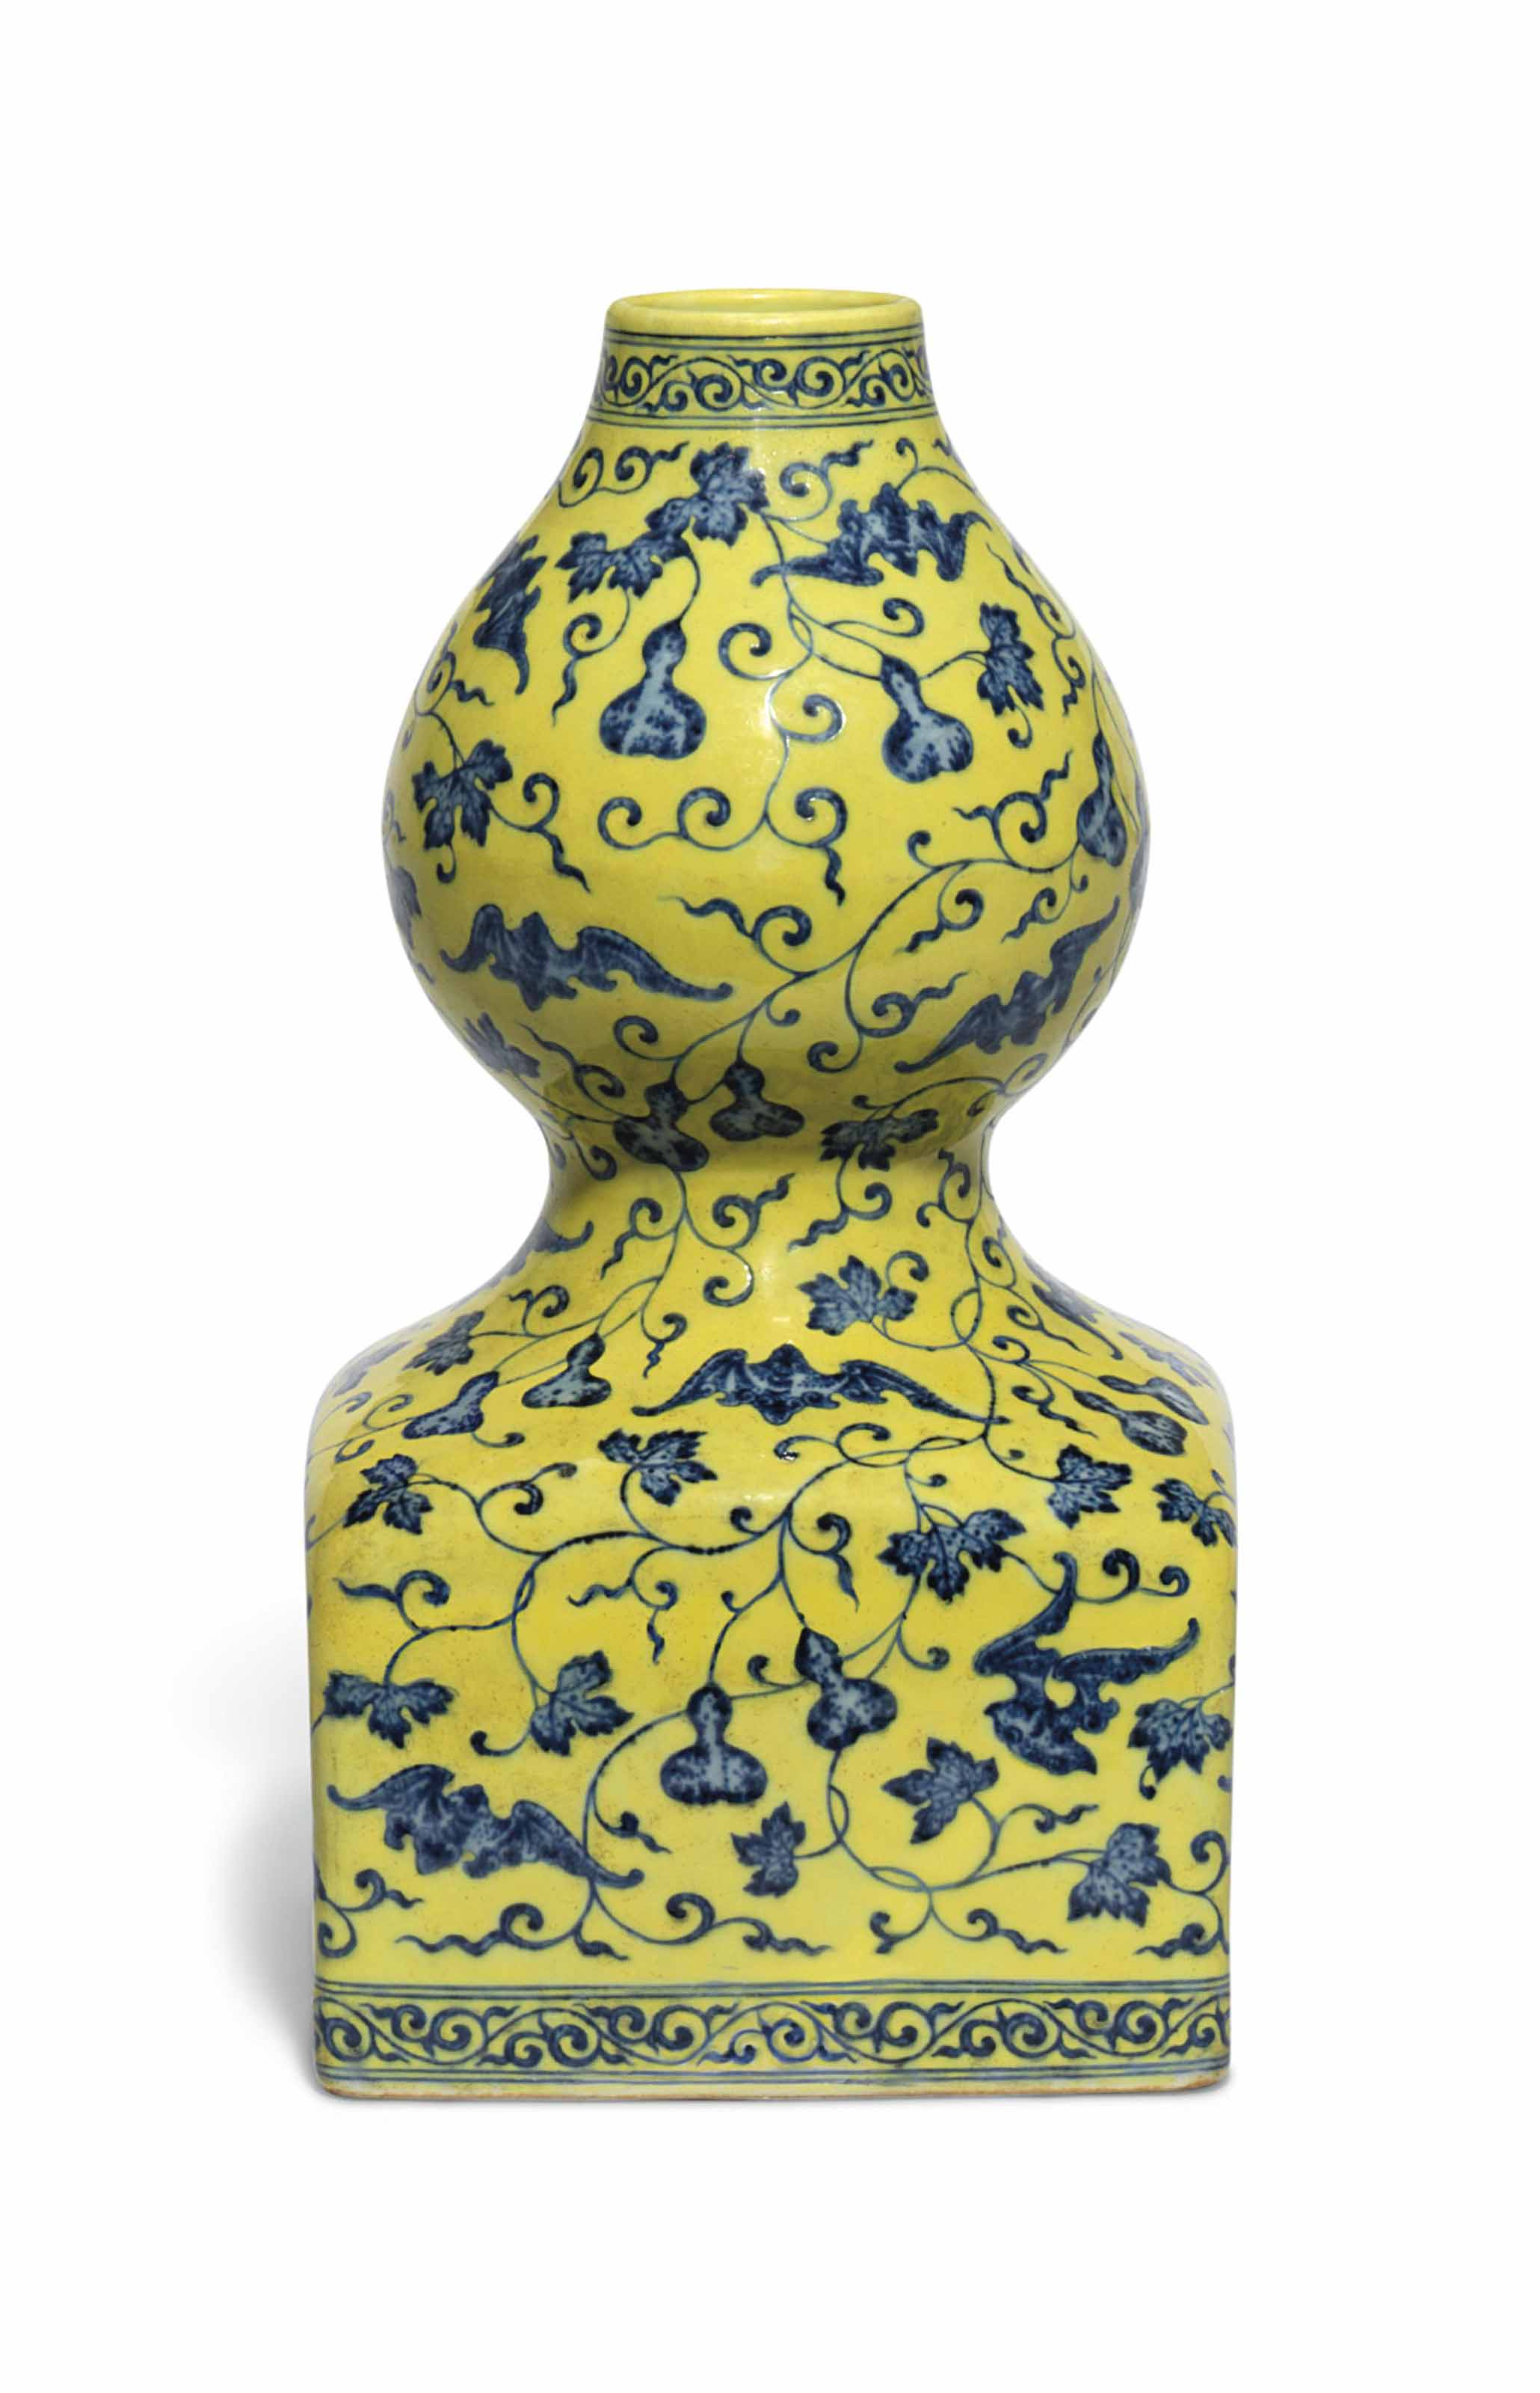 AN UNDERGLAZE-BLUE AND YELLOW ENAMELLED DOUBLE GOURD VASE